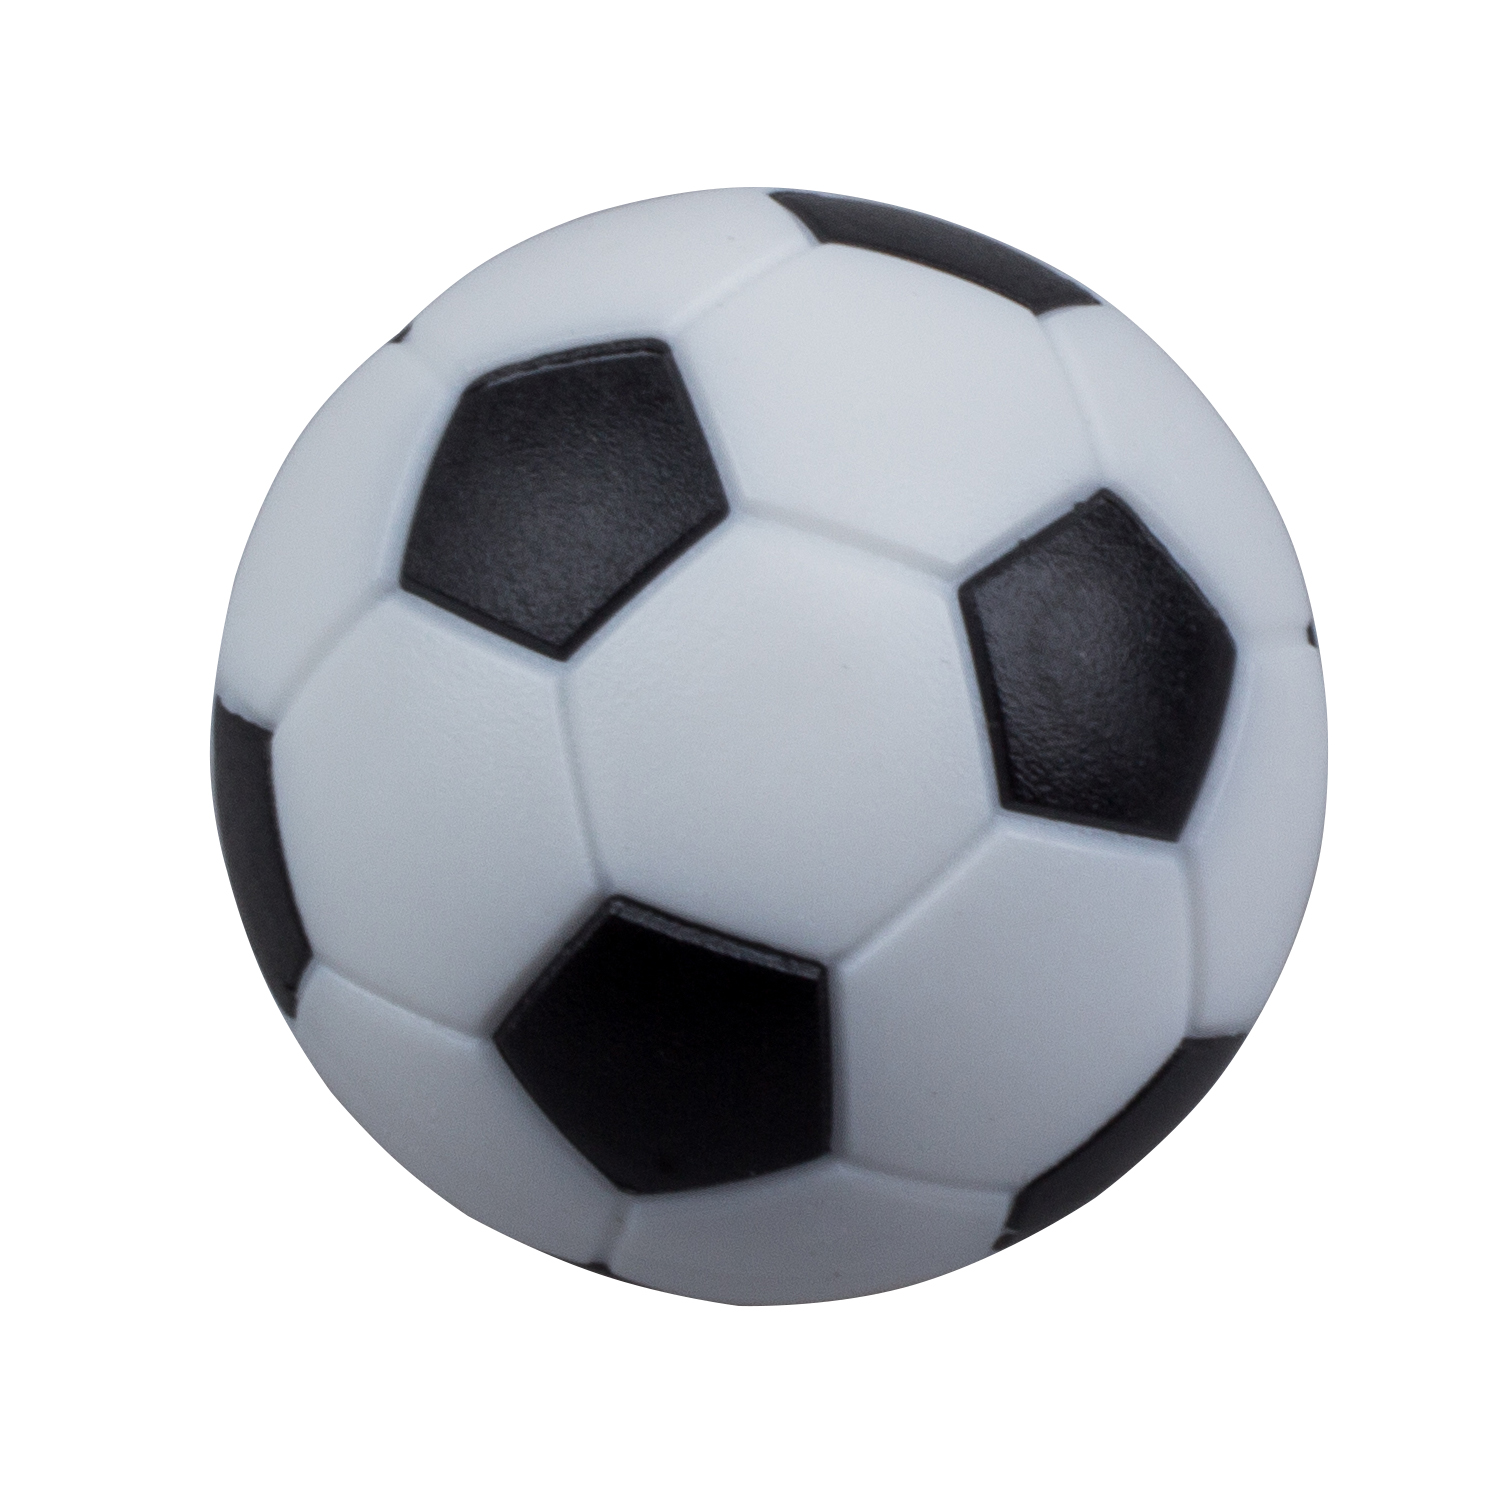 4pcs 32mm Plastic Soccer Table Football Ball Football Soccer